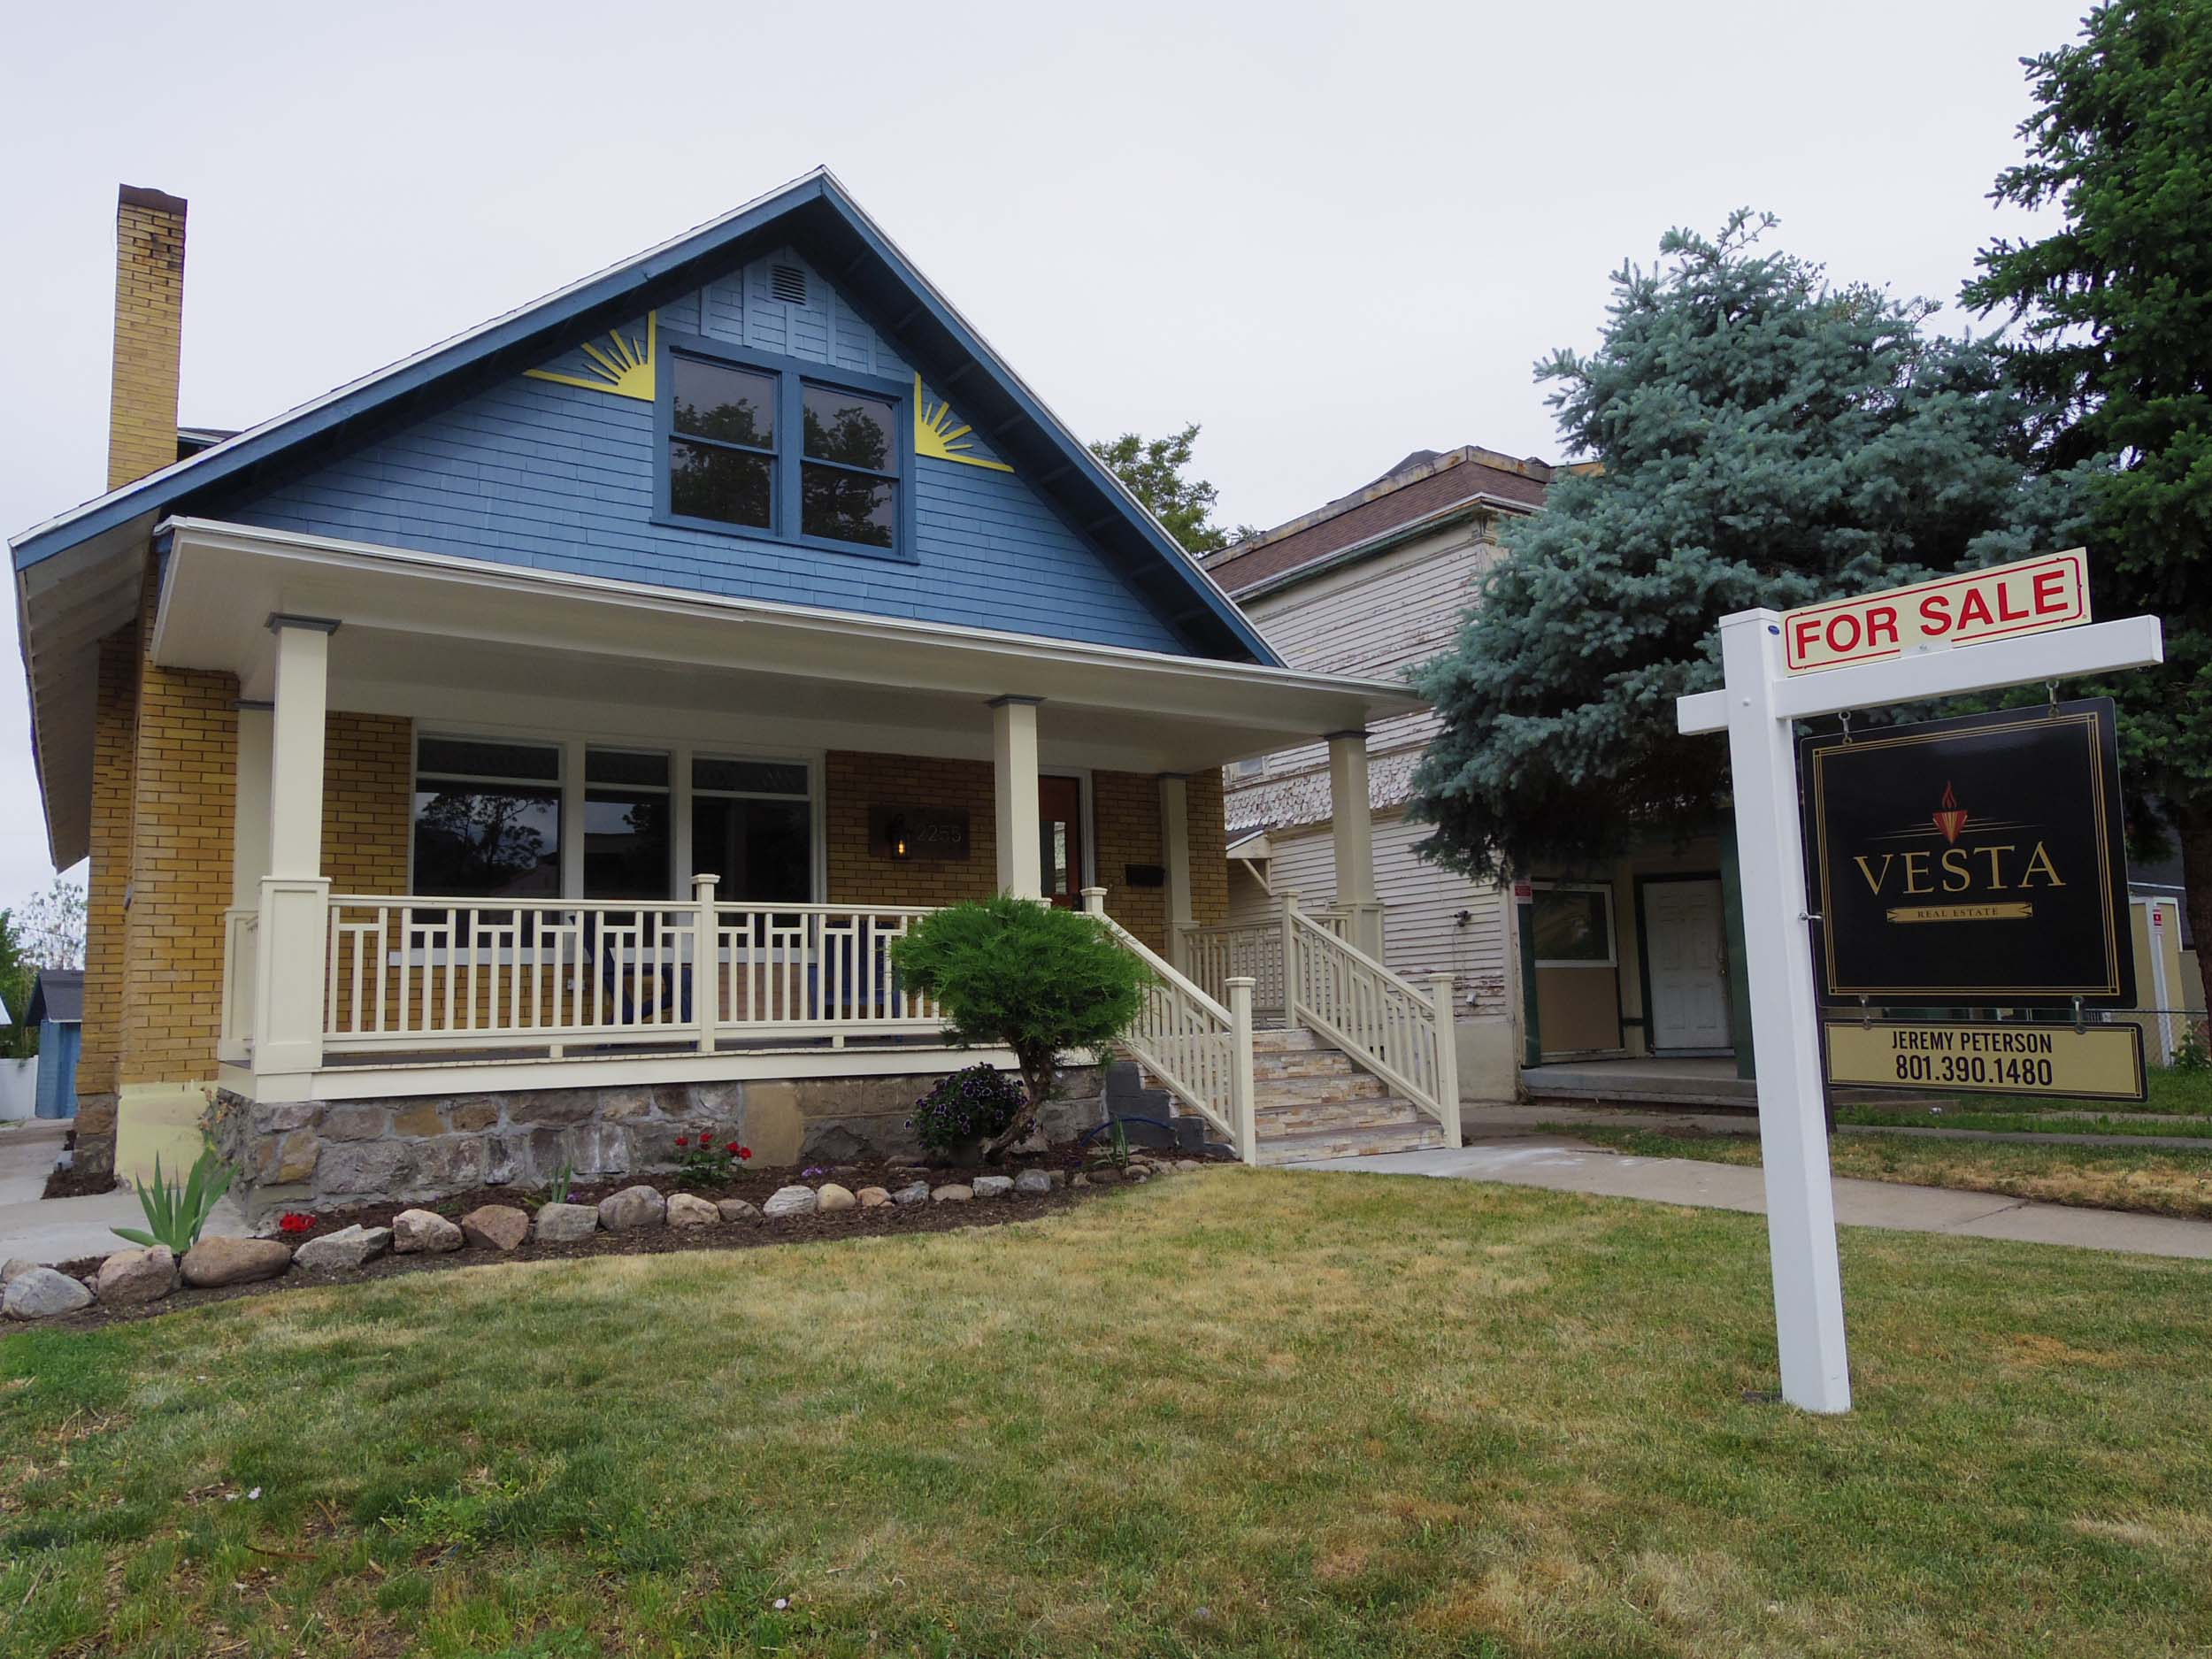 JUST SOLD! Historic Julius A. Smith House